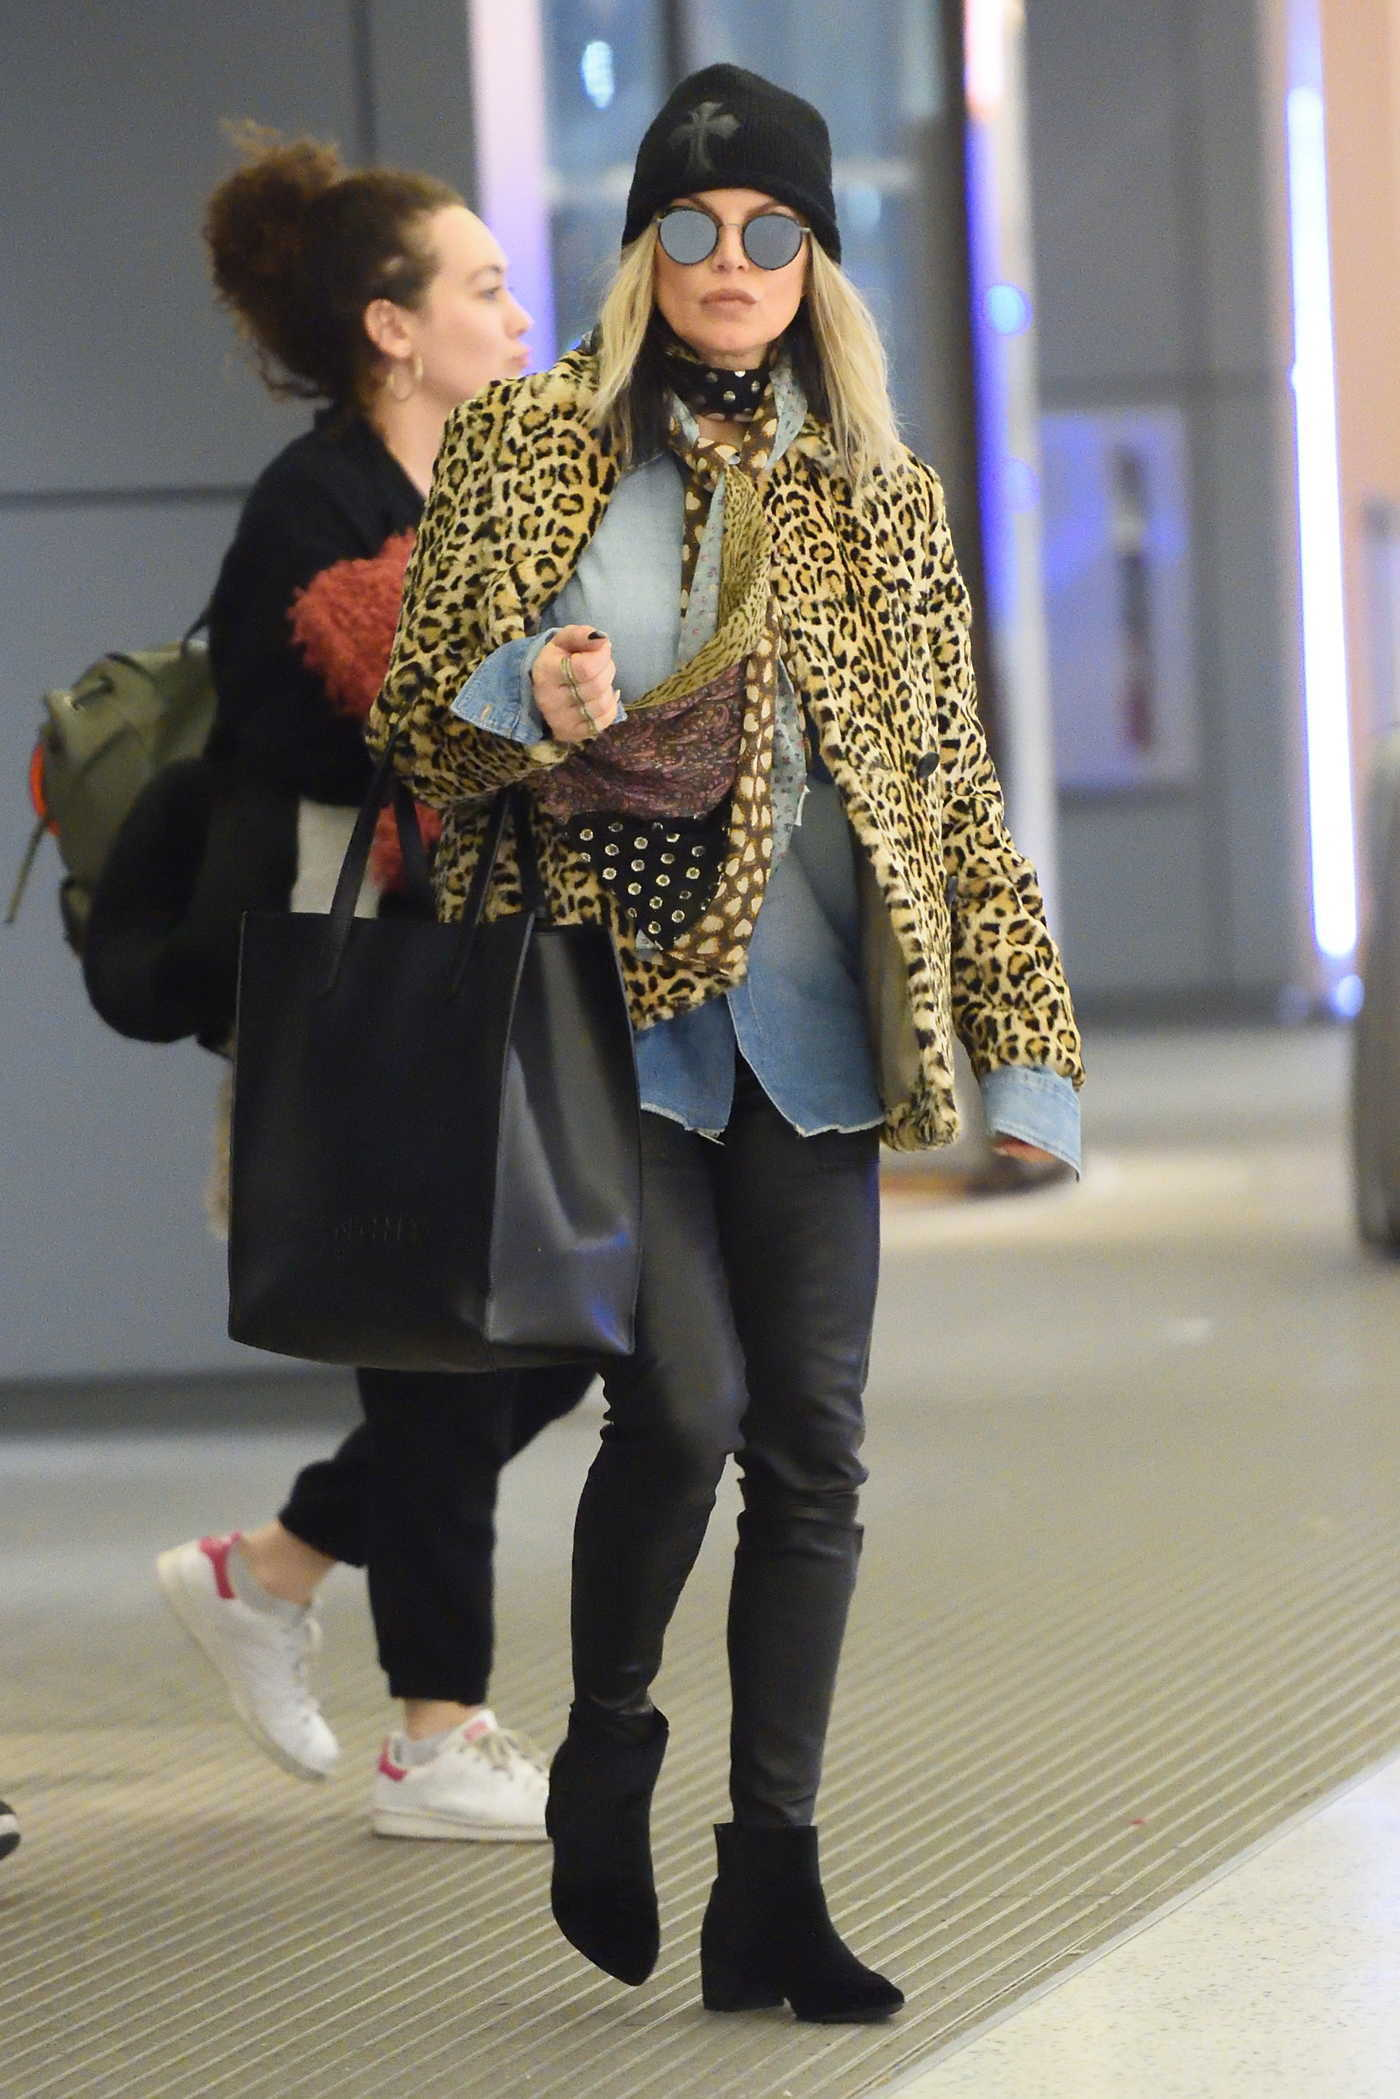 Fergie Wears a Leopard Print Jacket at JFK airport in NYC 12/17/2017